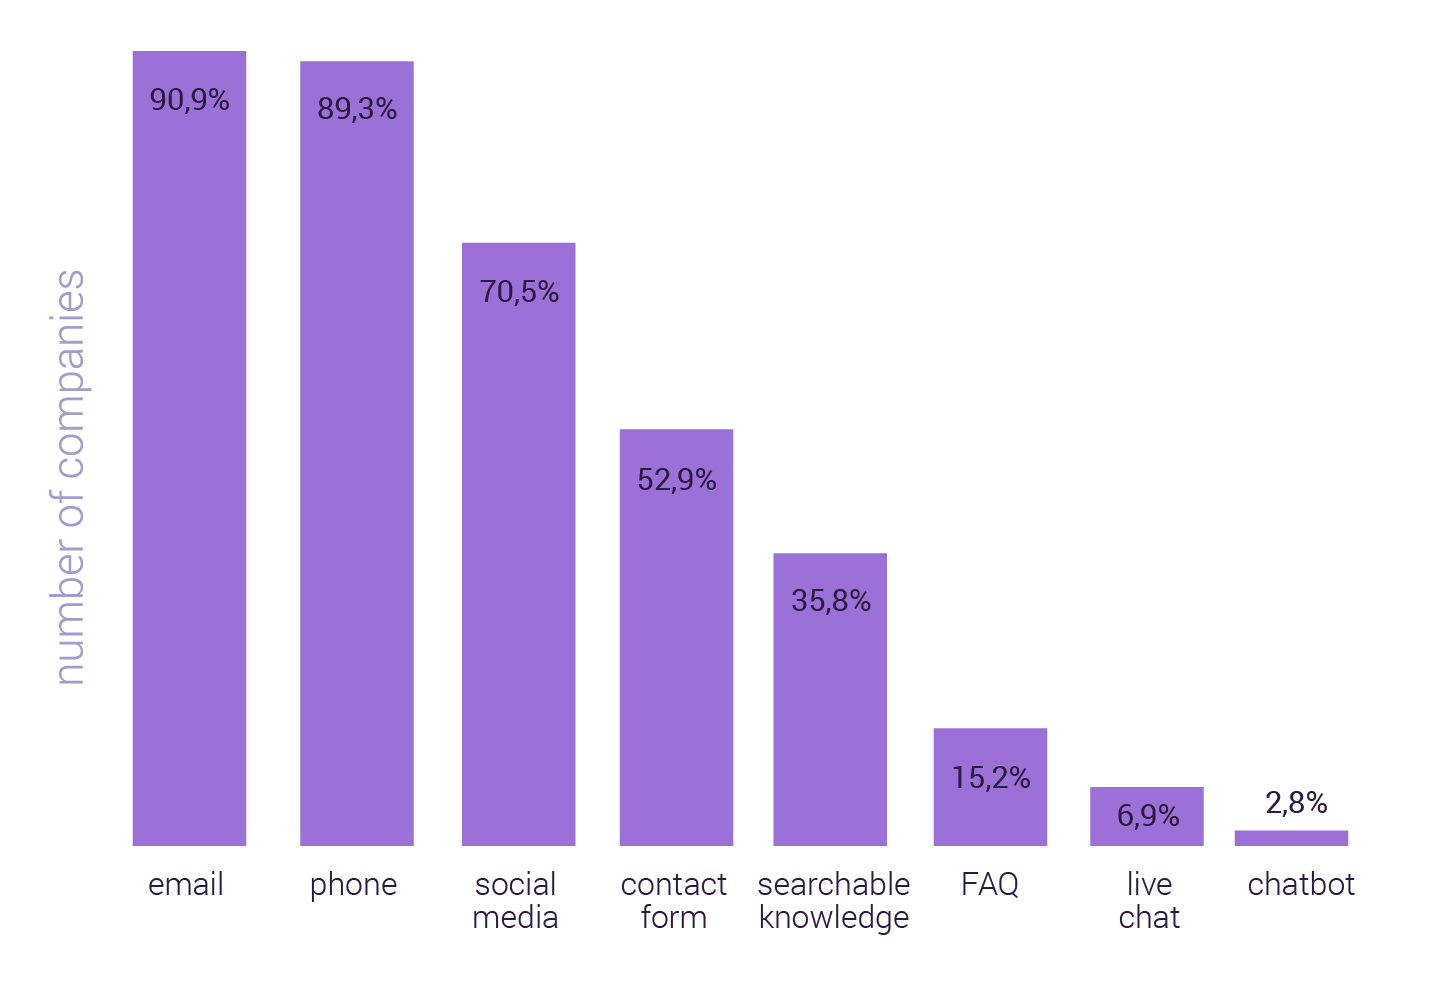 Most Popular Communication Tools in 2020 - custoemr experience report getjenny